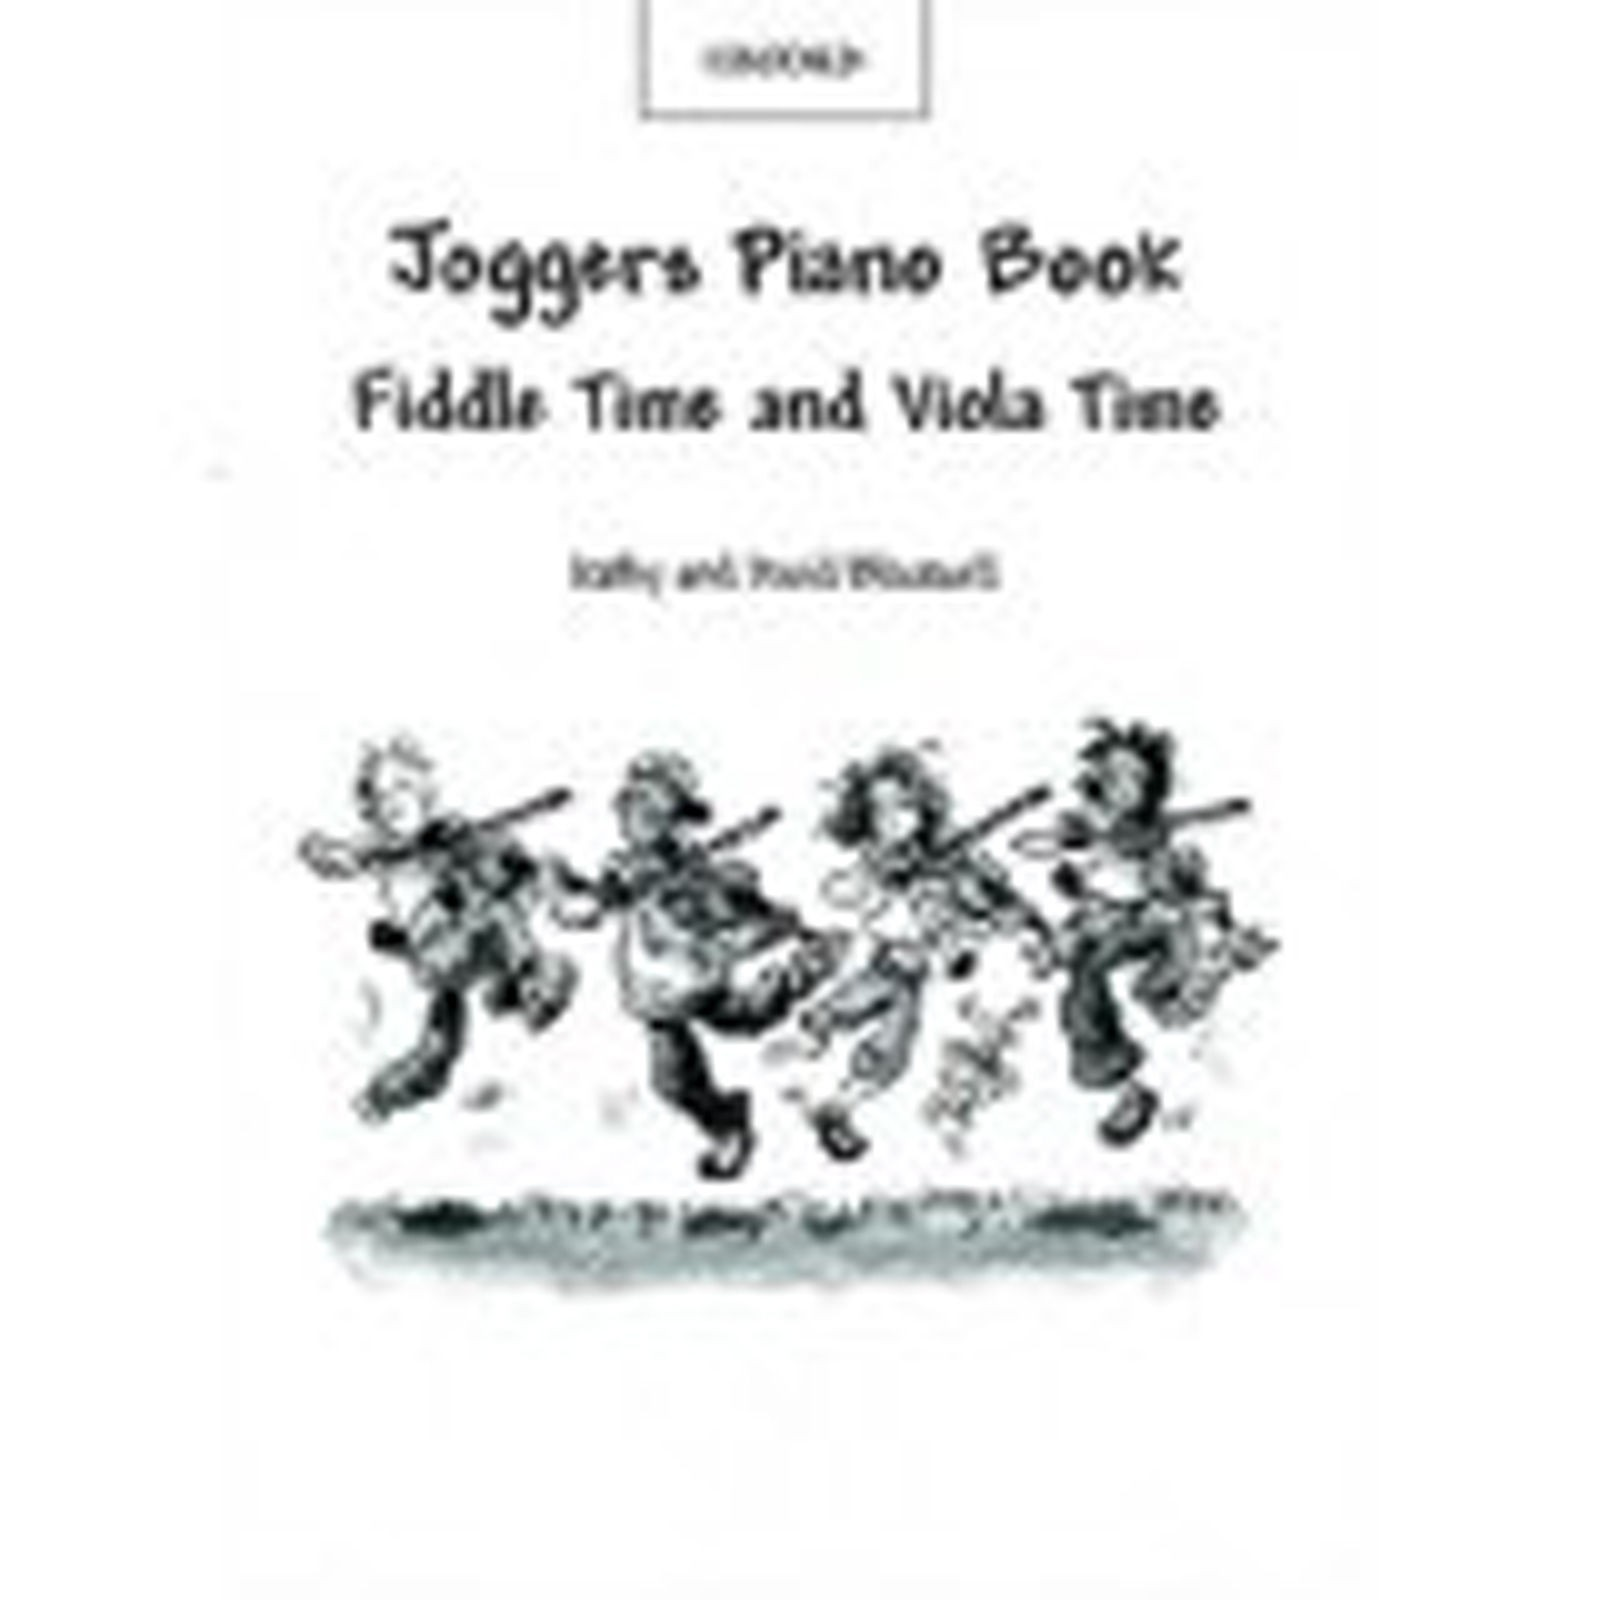 Joggers Piano Book for Fiddle Time & Viola Time Teacher's Copy Sheet Music B52